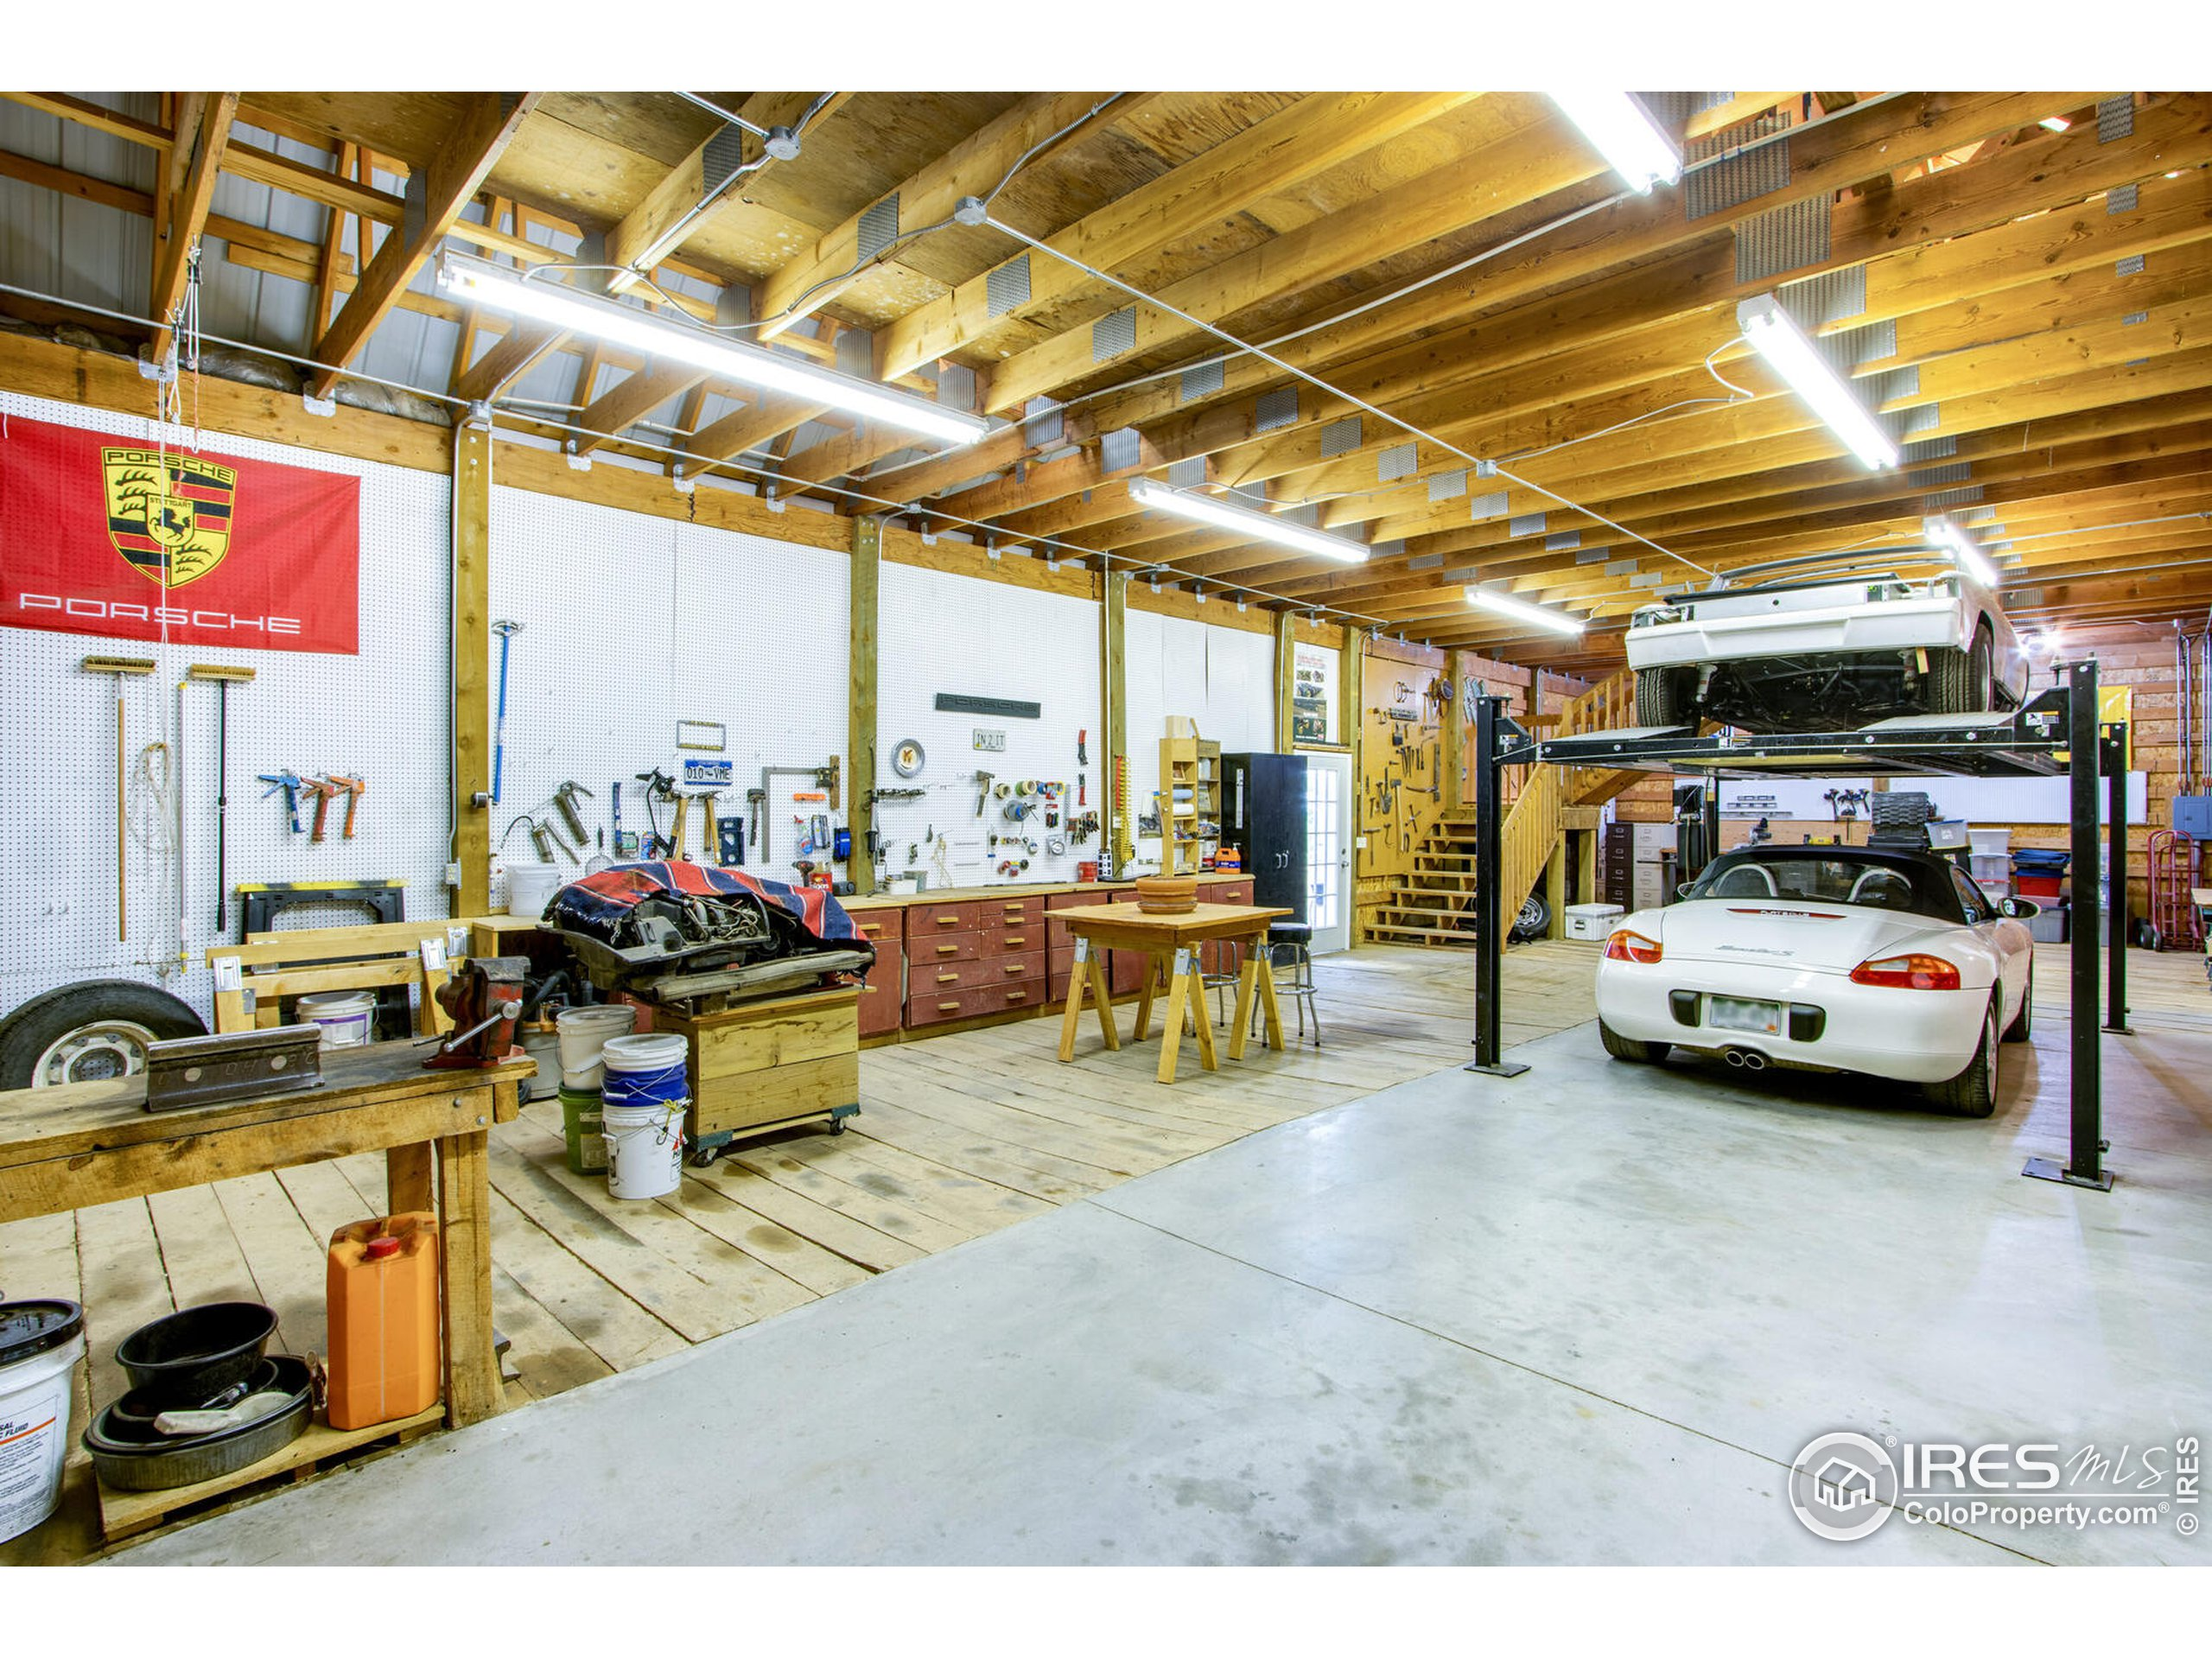 Shop is over 2,600 square feet with a 2nd level/loft